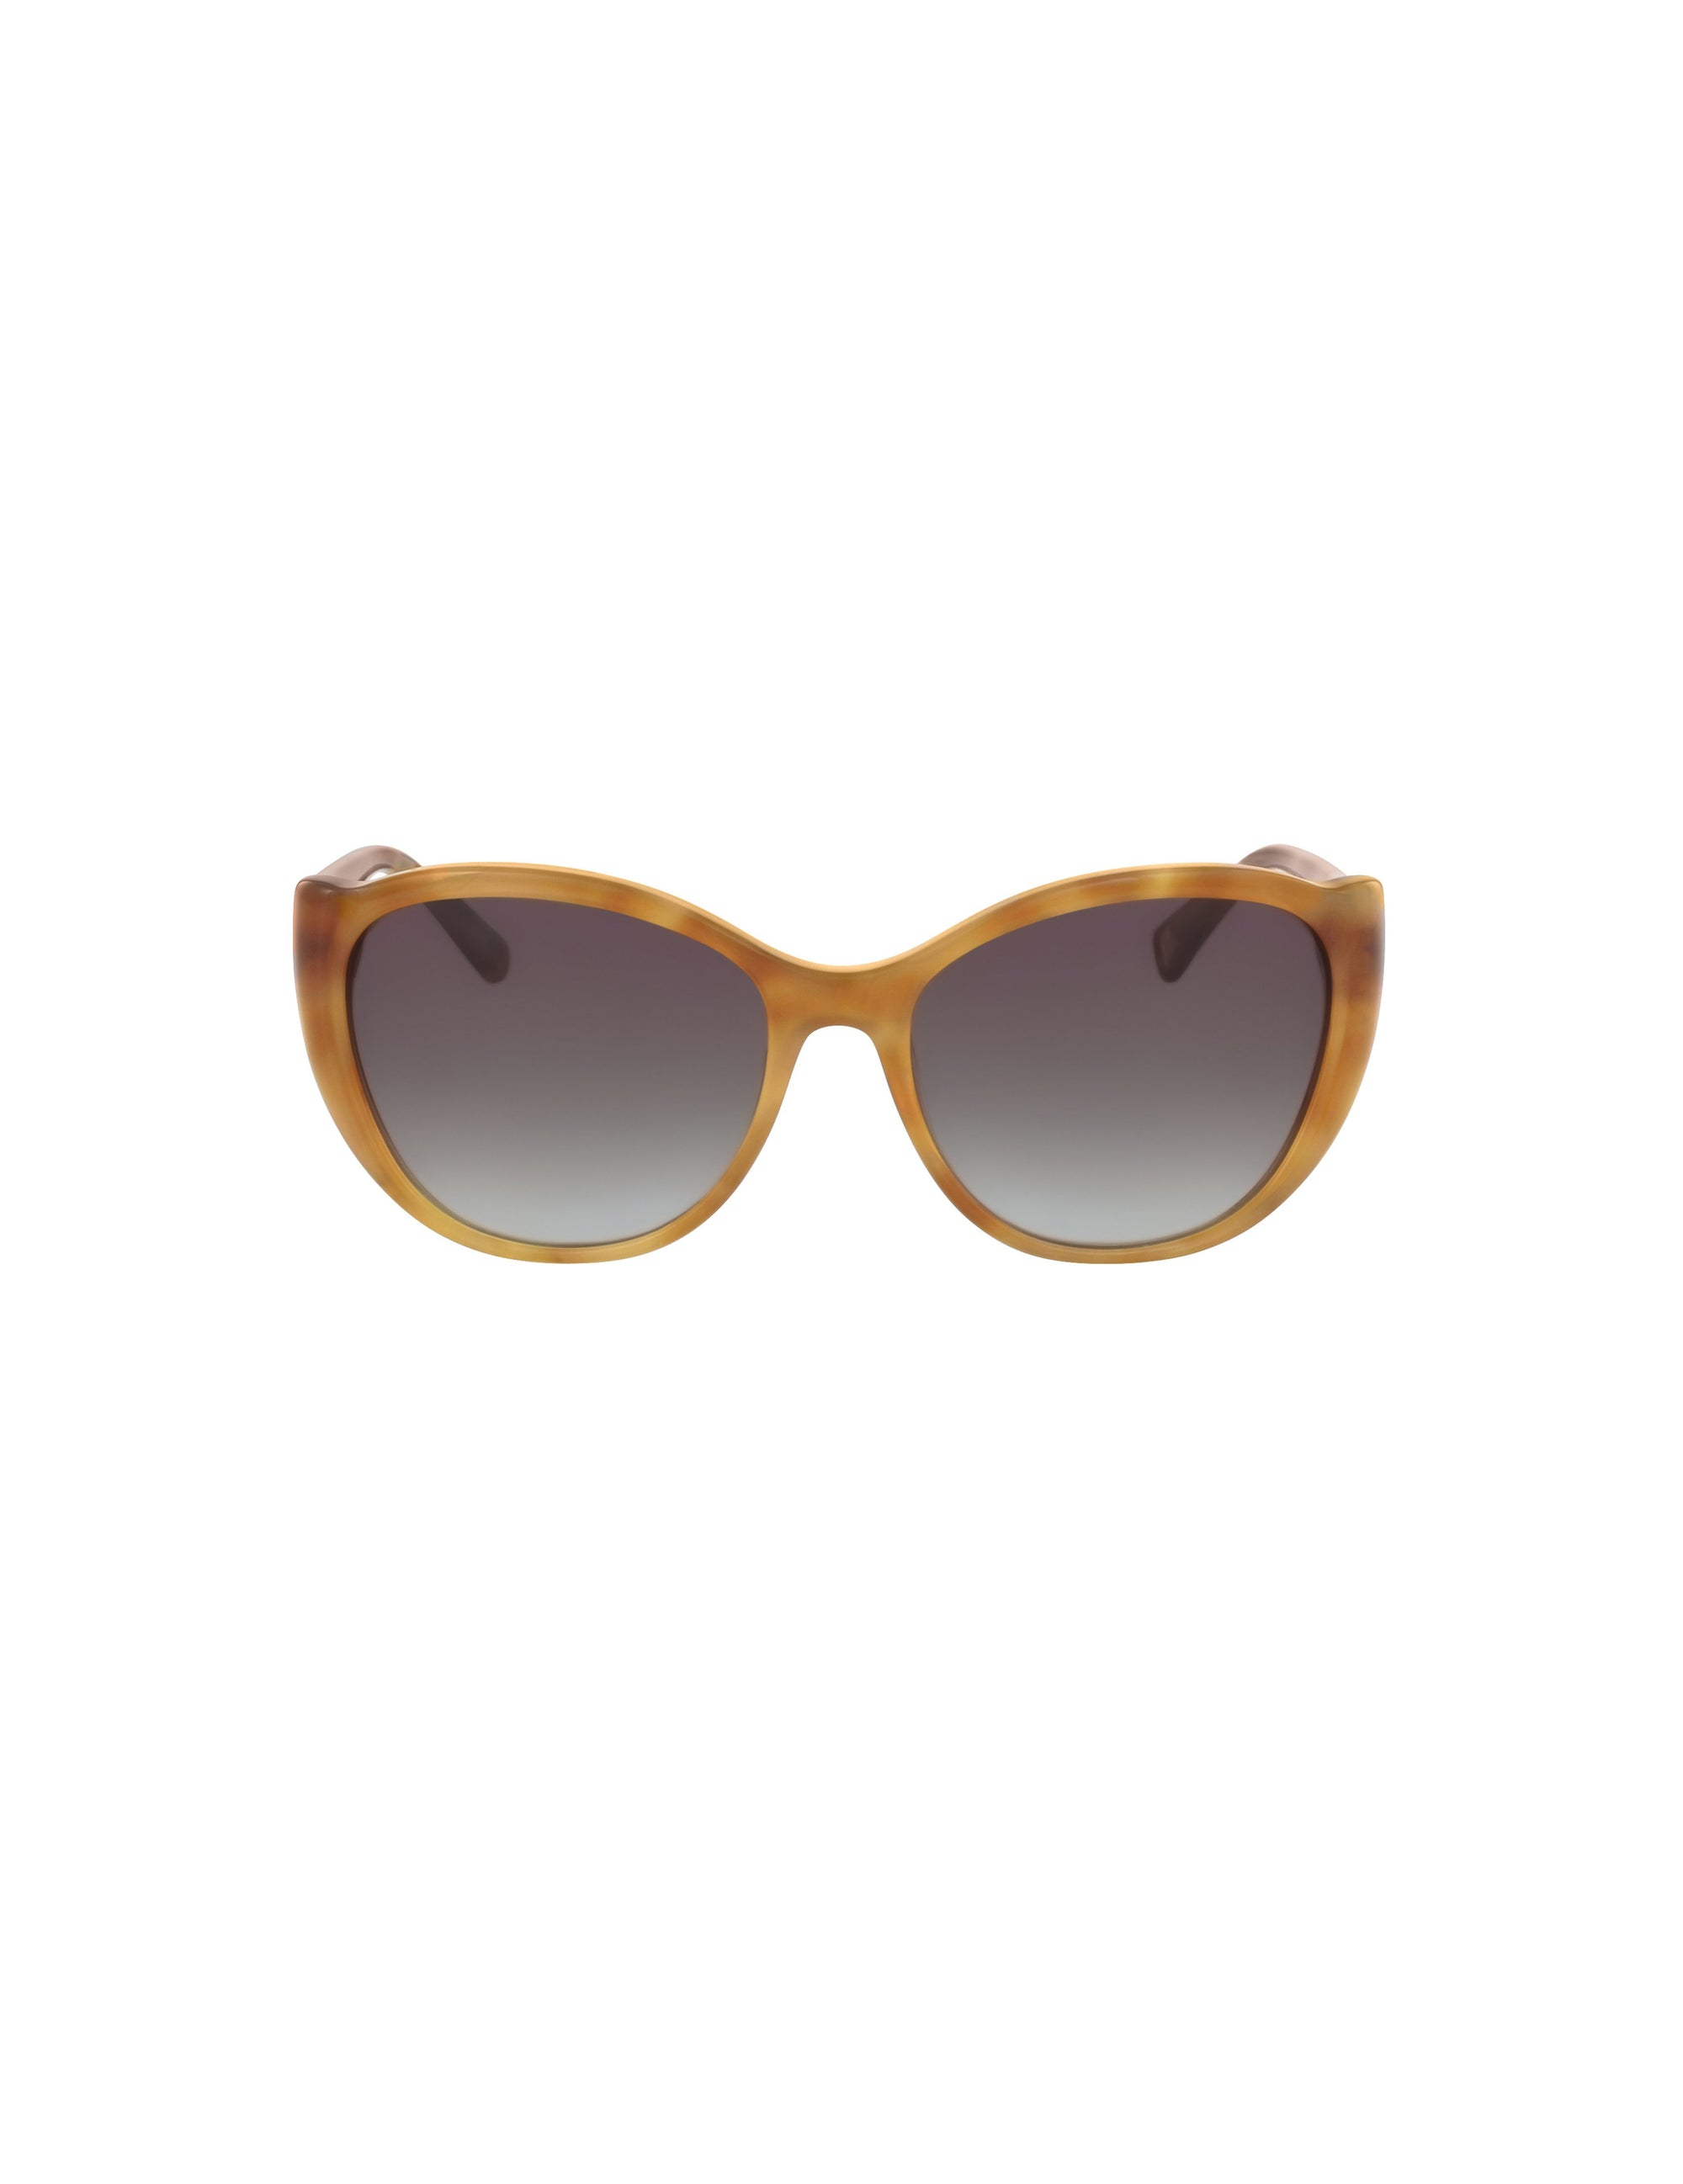 Blonde Tortoise Modern Cateye Sunglasses